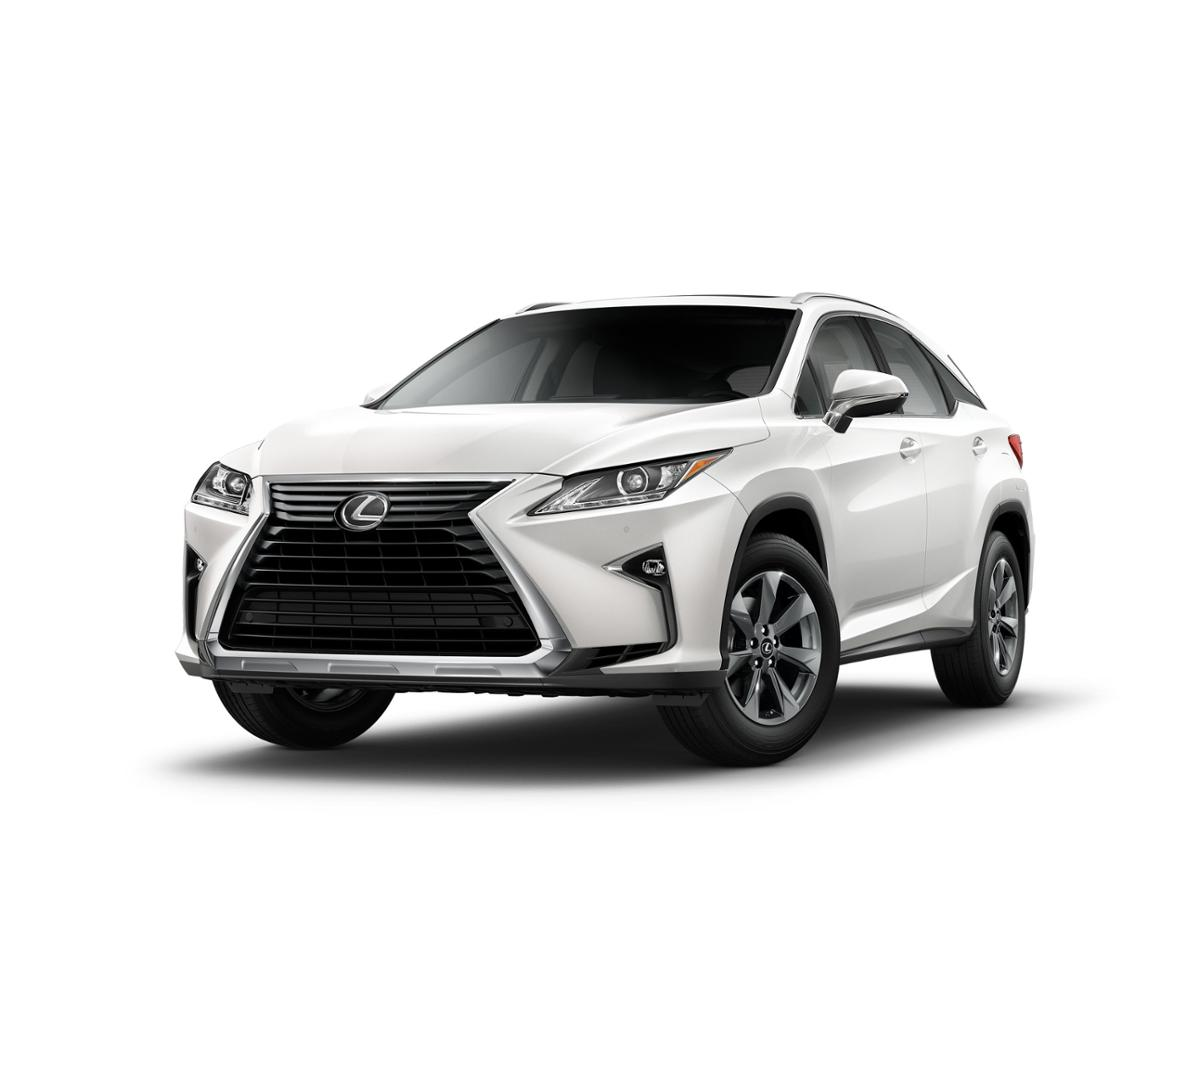 2018 Lexus RX 350 Vehicle Photo in Sacramento, CA 95821